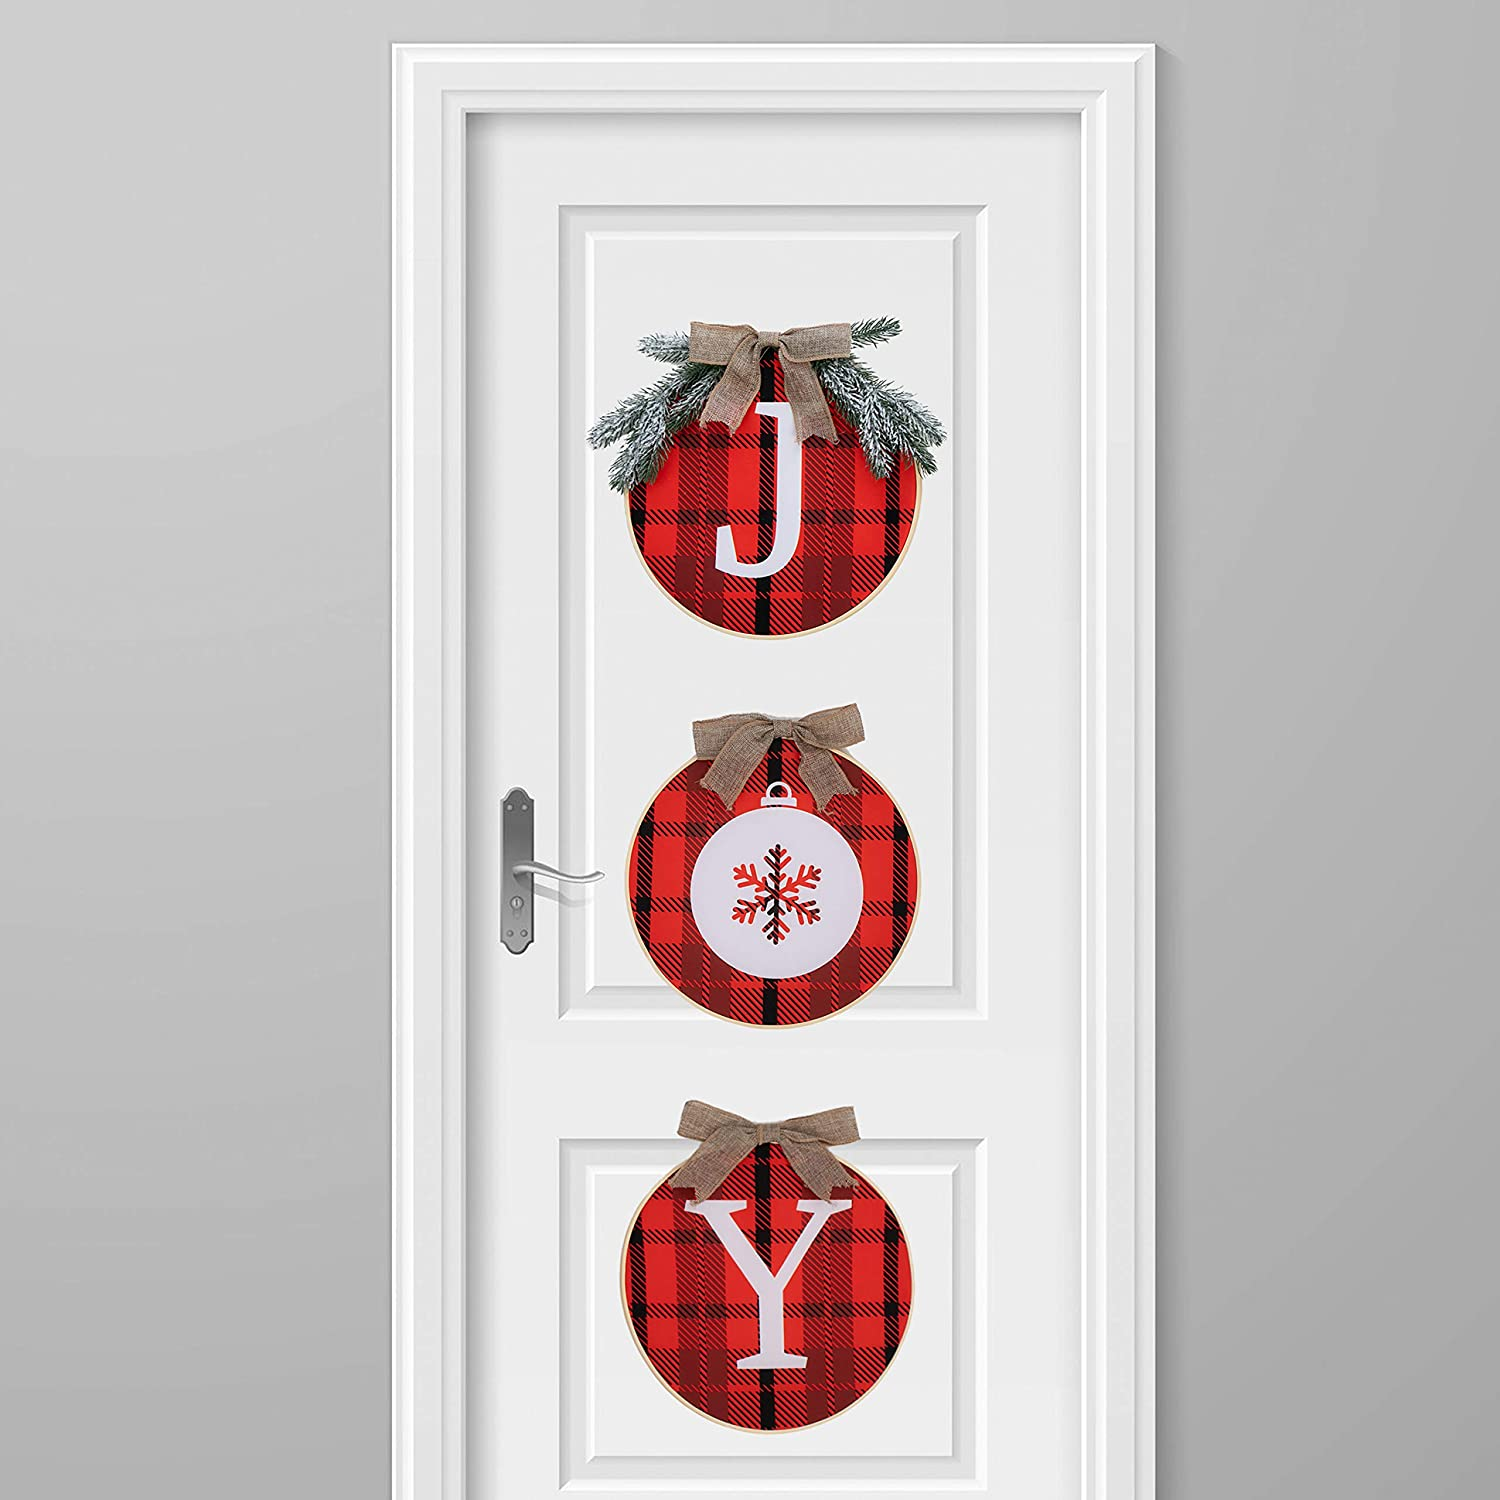 Joiedomi Christmas Joy Sign Buffalo Plaid Wreath for Front Door, Rustic Burlap Wooden Holiday Décor for Window Wall Farmhouse Indoor Outdoor Christmas Holiday Decorations